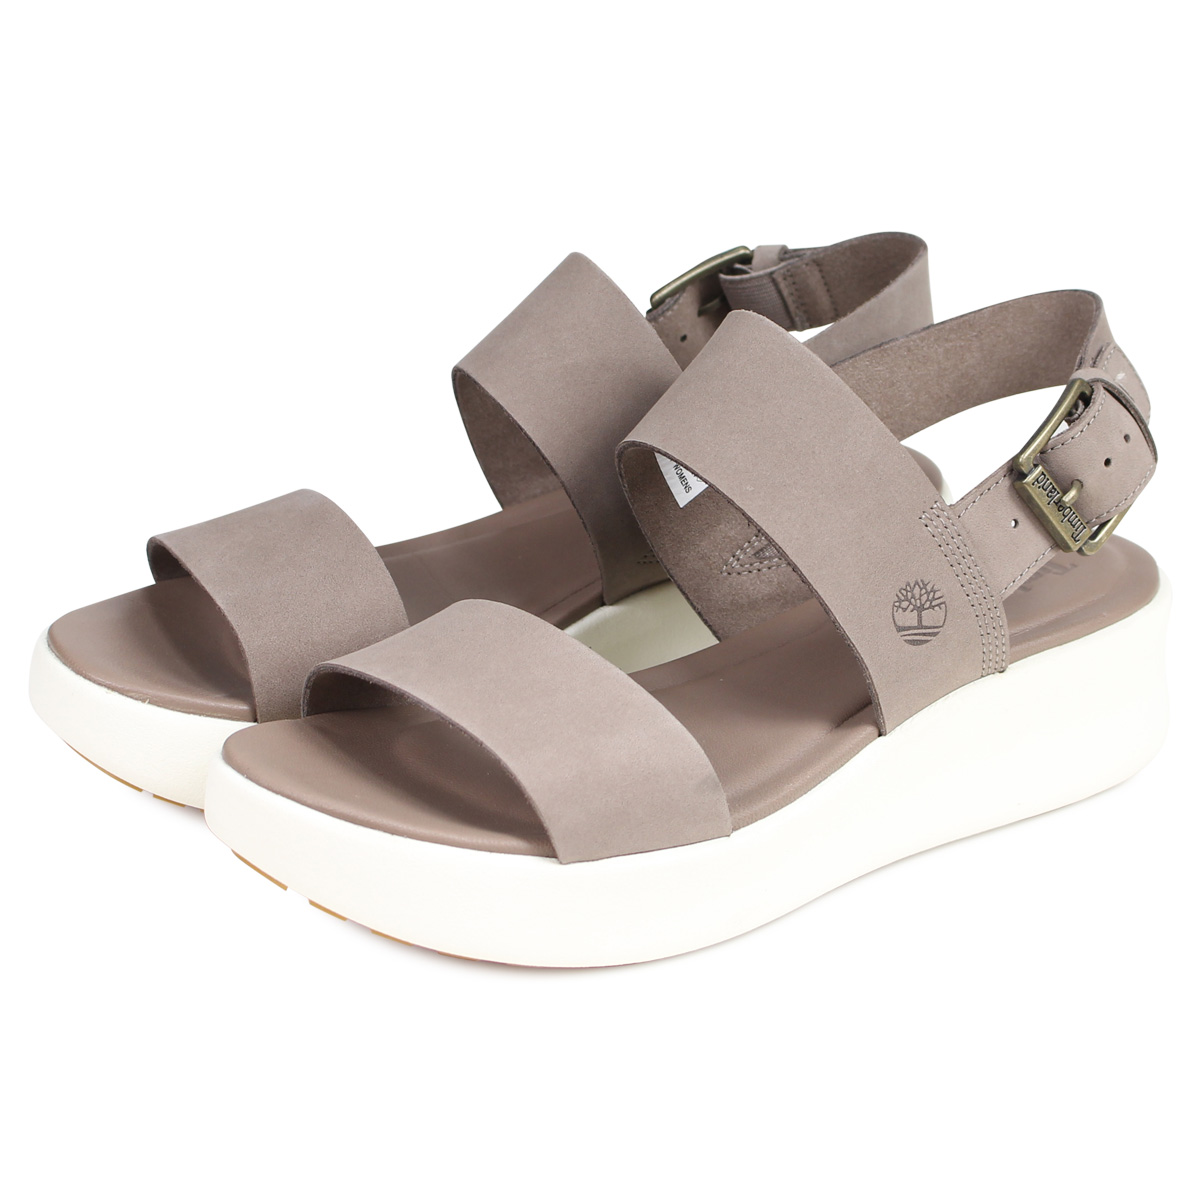 Timberland WOMENS LOS ANGELES WIND SANDAL Timberland sandals platform sandals Lady's light brown A1XW6929 [195]